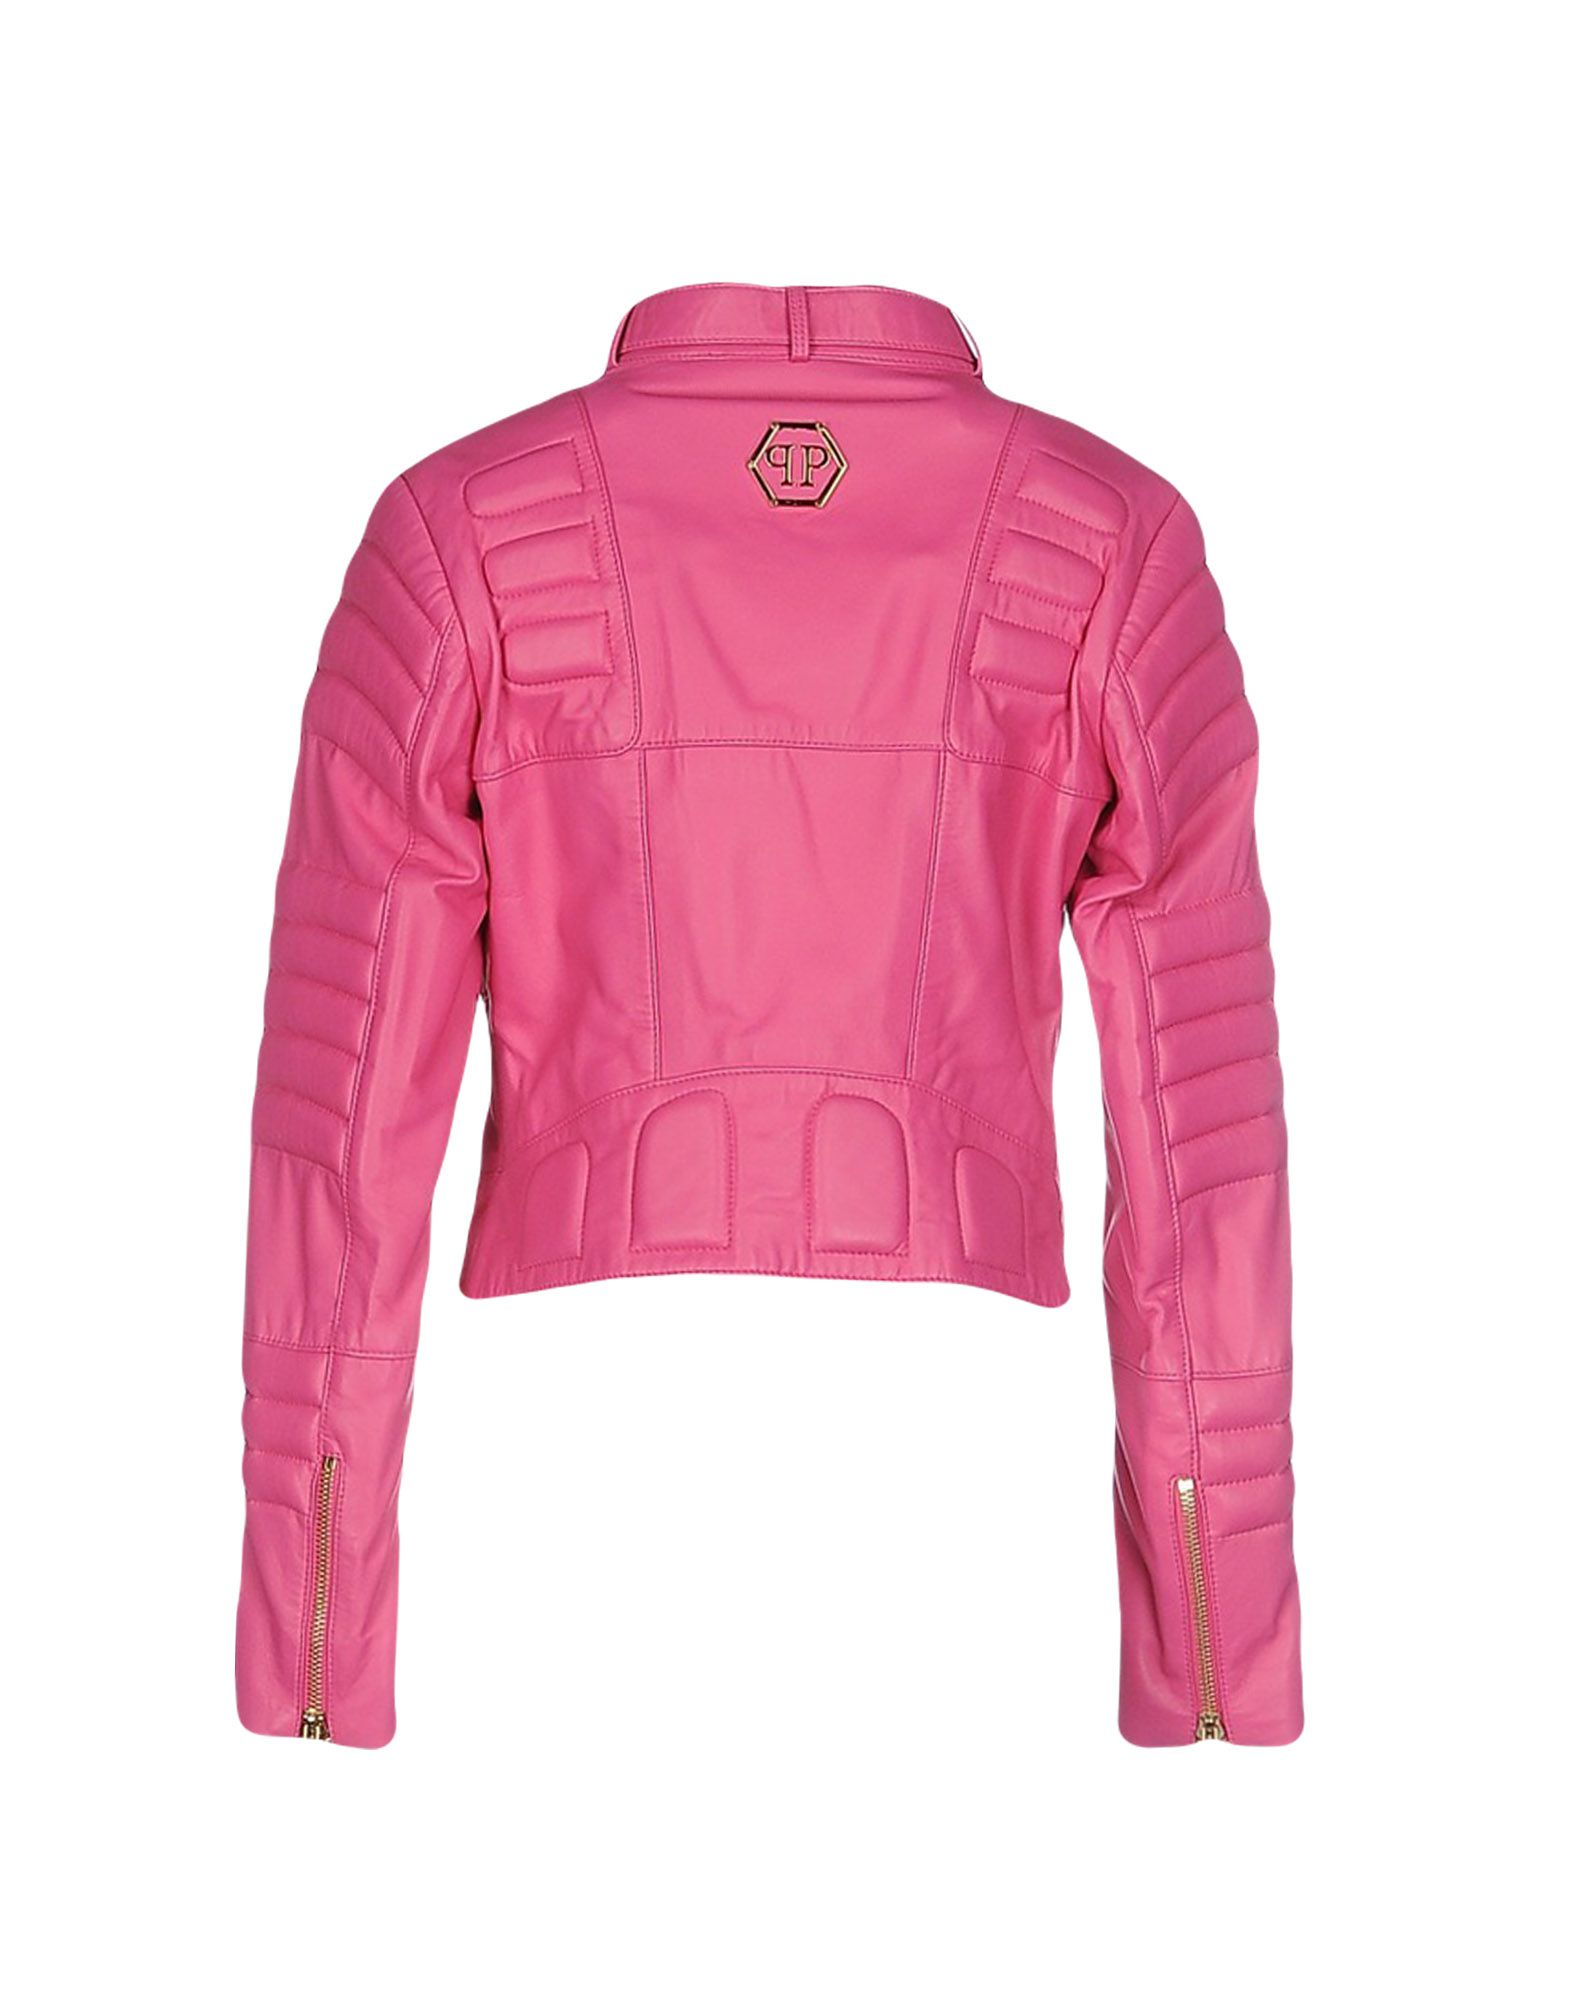 philipp plein jacket in pink lyst. Black Bedroom Furniture Sets. Home Design Ideas